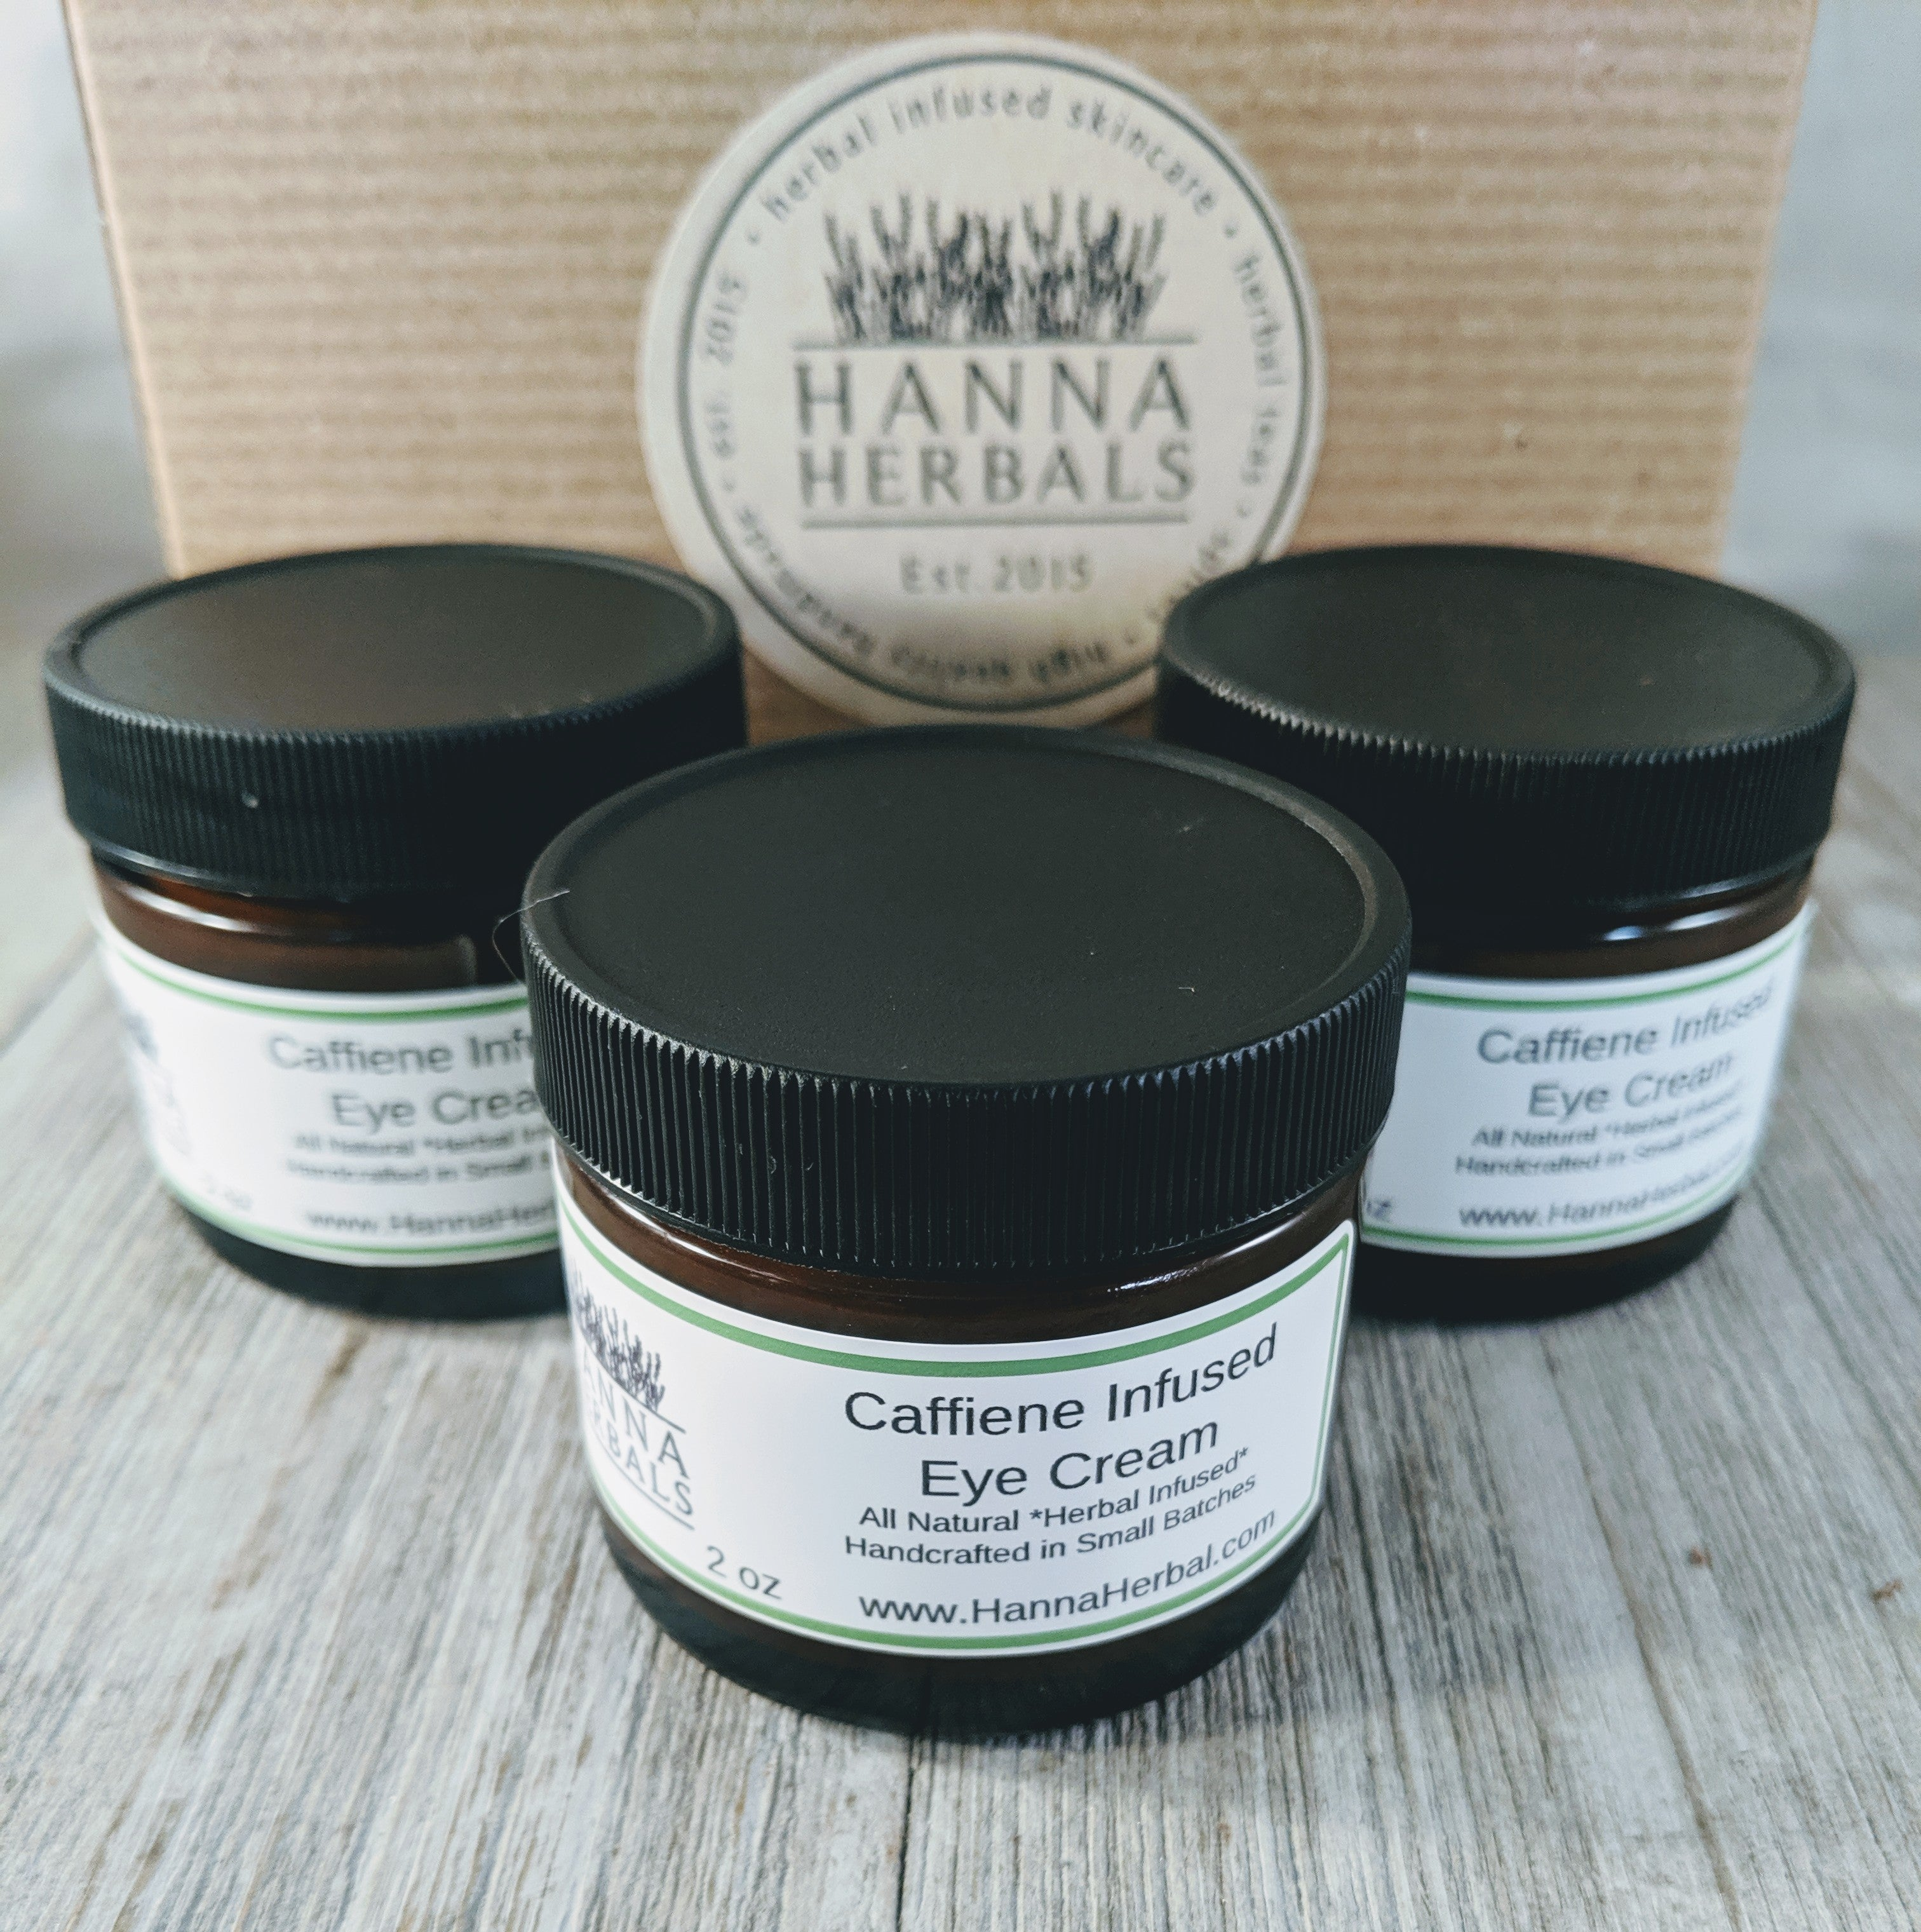 Caffiene Infused Eye Cream - Wands Of Nature